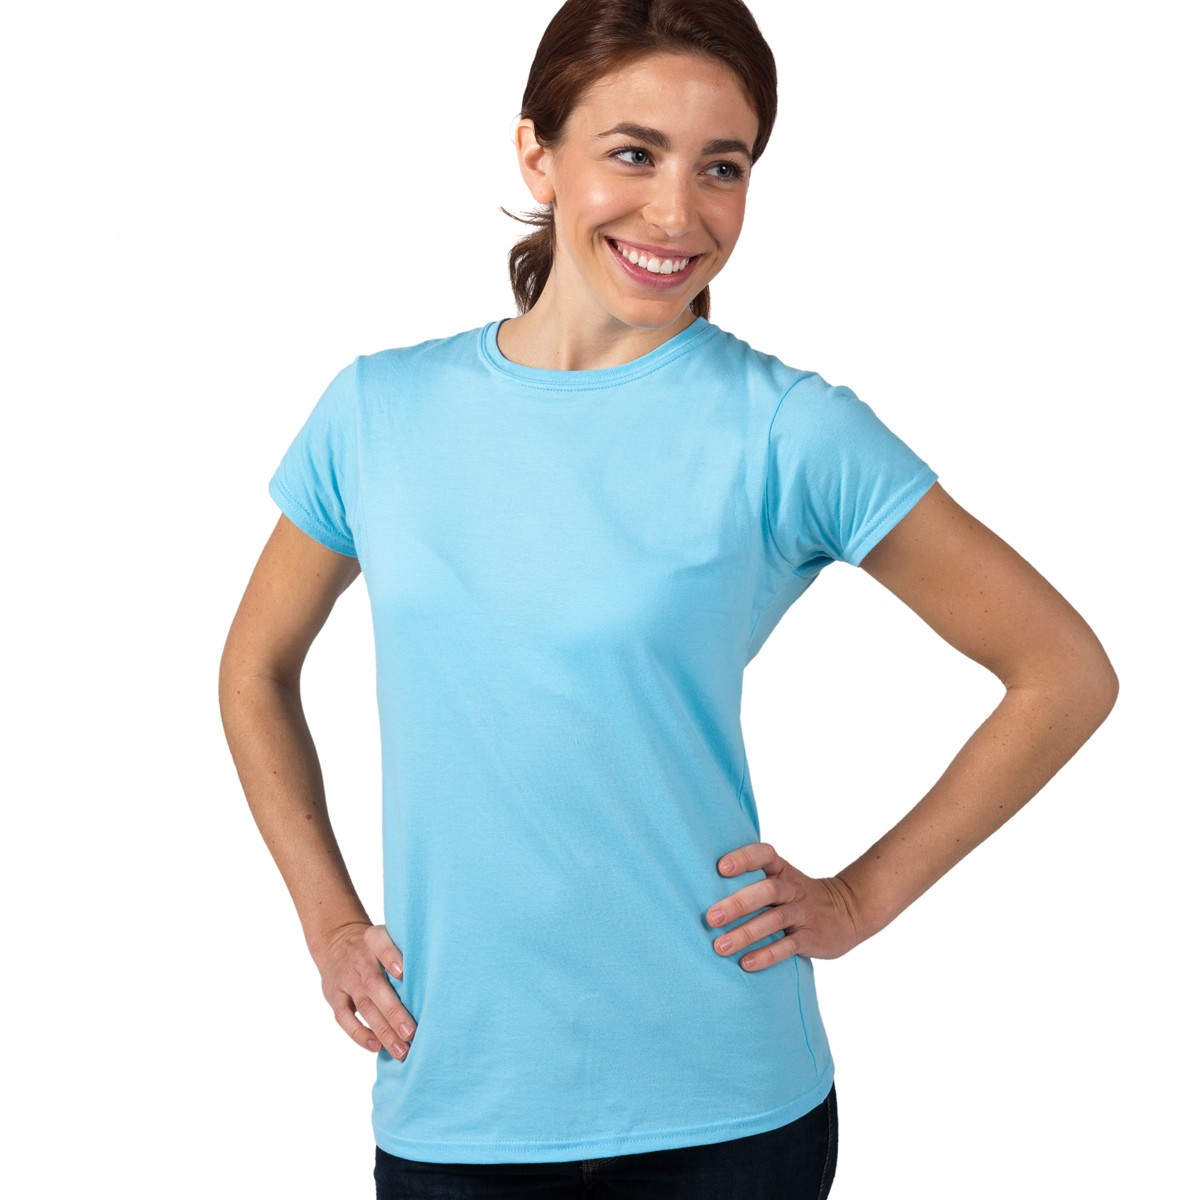 Find high quality Women's T-Shirts at CafePress. Shop a large selection of custom t-shirts, longsleeves, sweatshirts, tanks and more.